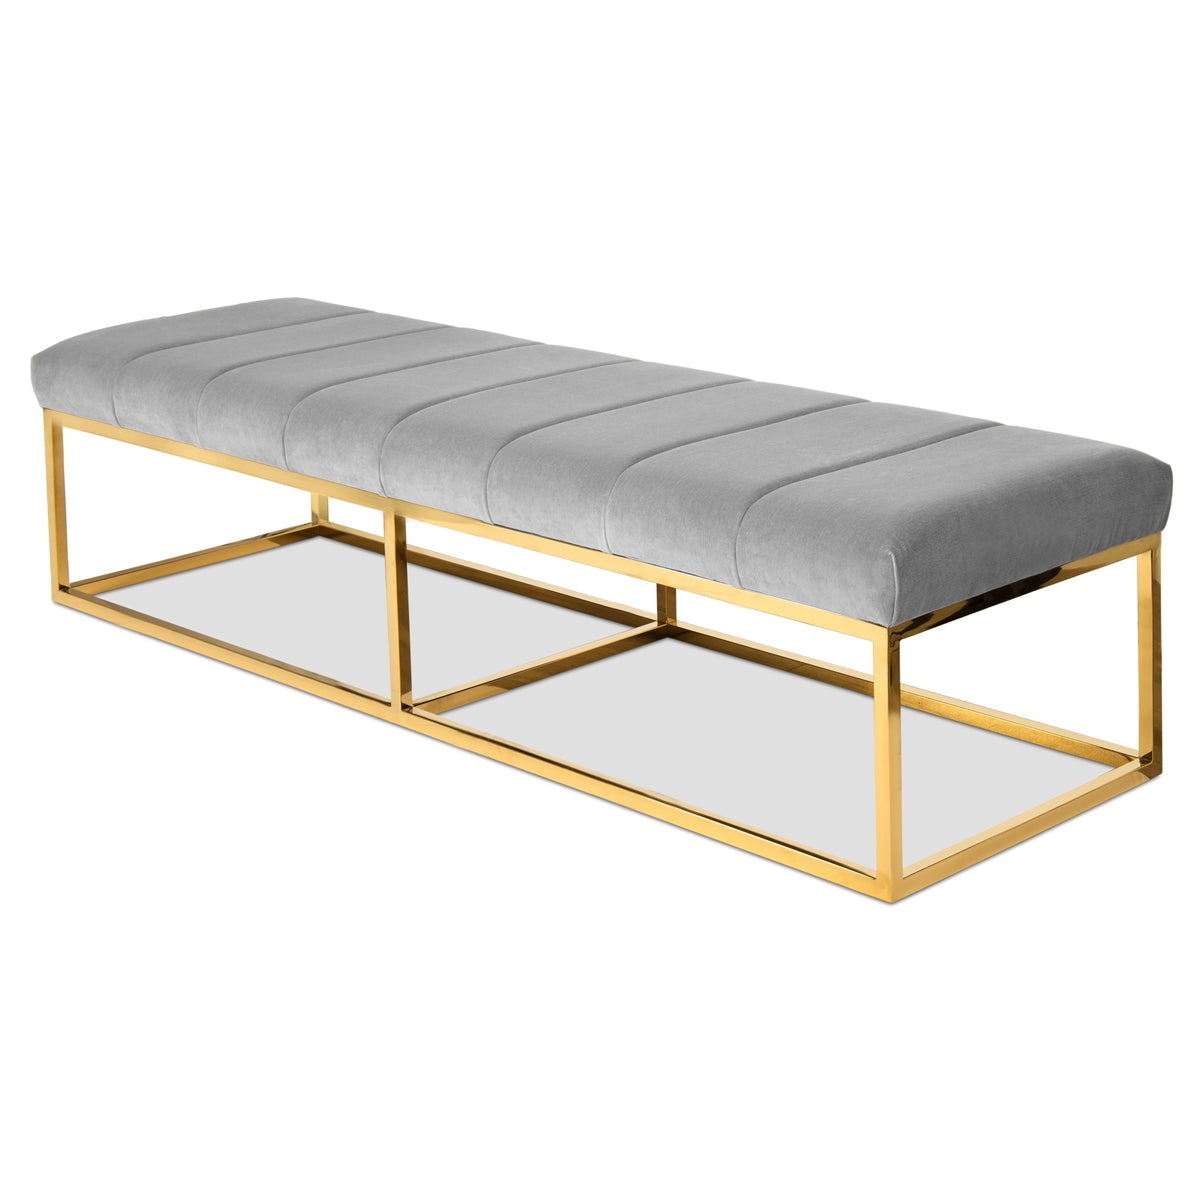 Excellent Corfu Bench Backless Bench With Cushioned Seat Modshop Ocoug Best Dining Table And Chair Ideas Images Ocougorg